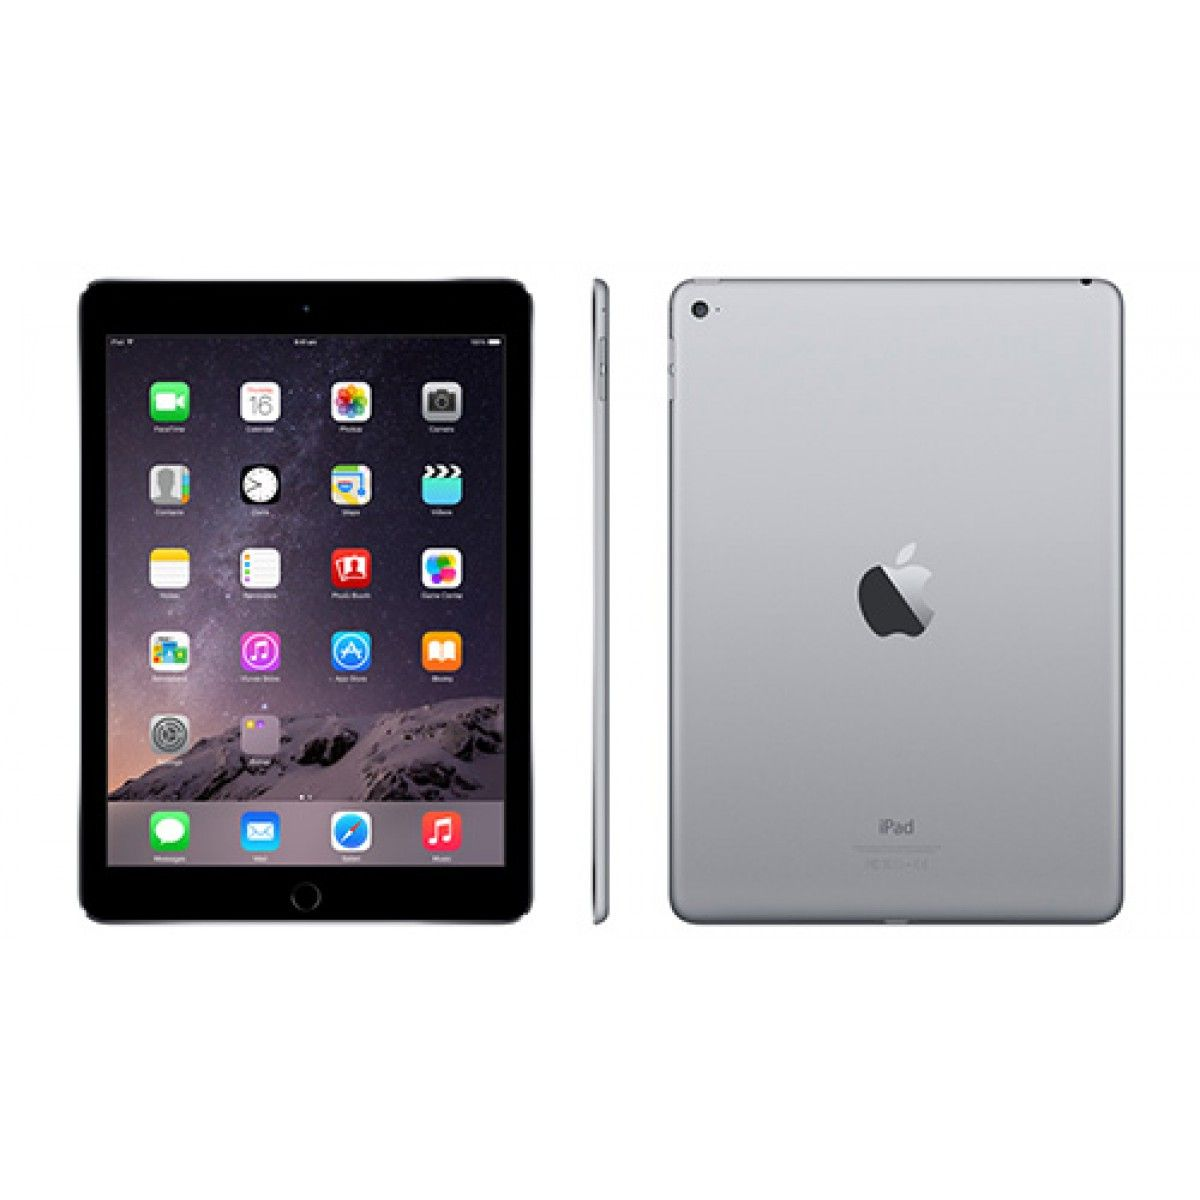 Buy Apple Ipad Mini 4 Tablet 7 9 Inch 64gb Wi Fi Space Grey At Low Prices In India Only On Winsant Com Tablets Mobile Treino Para Meninas Wi Fi Minie